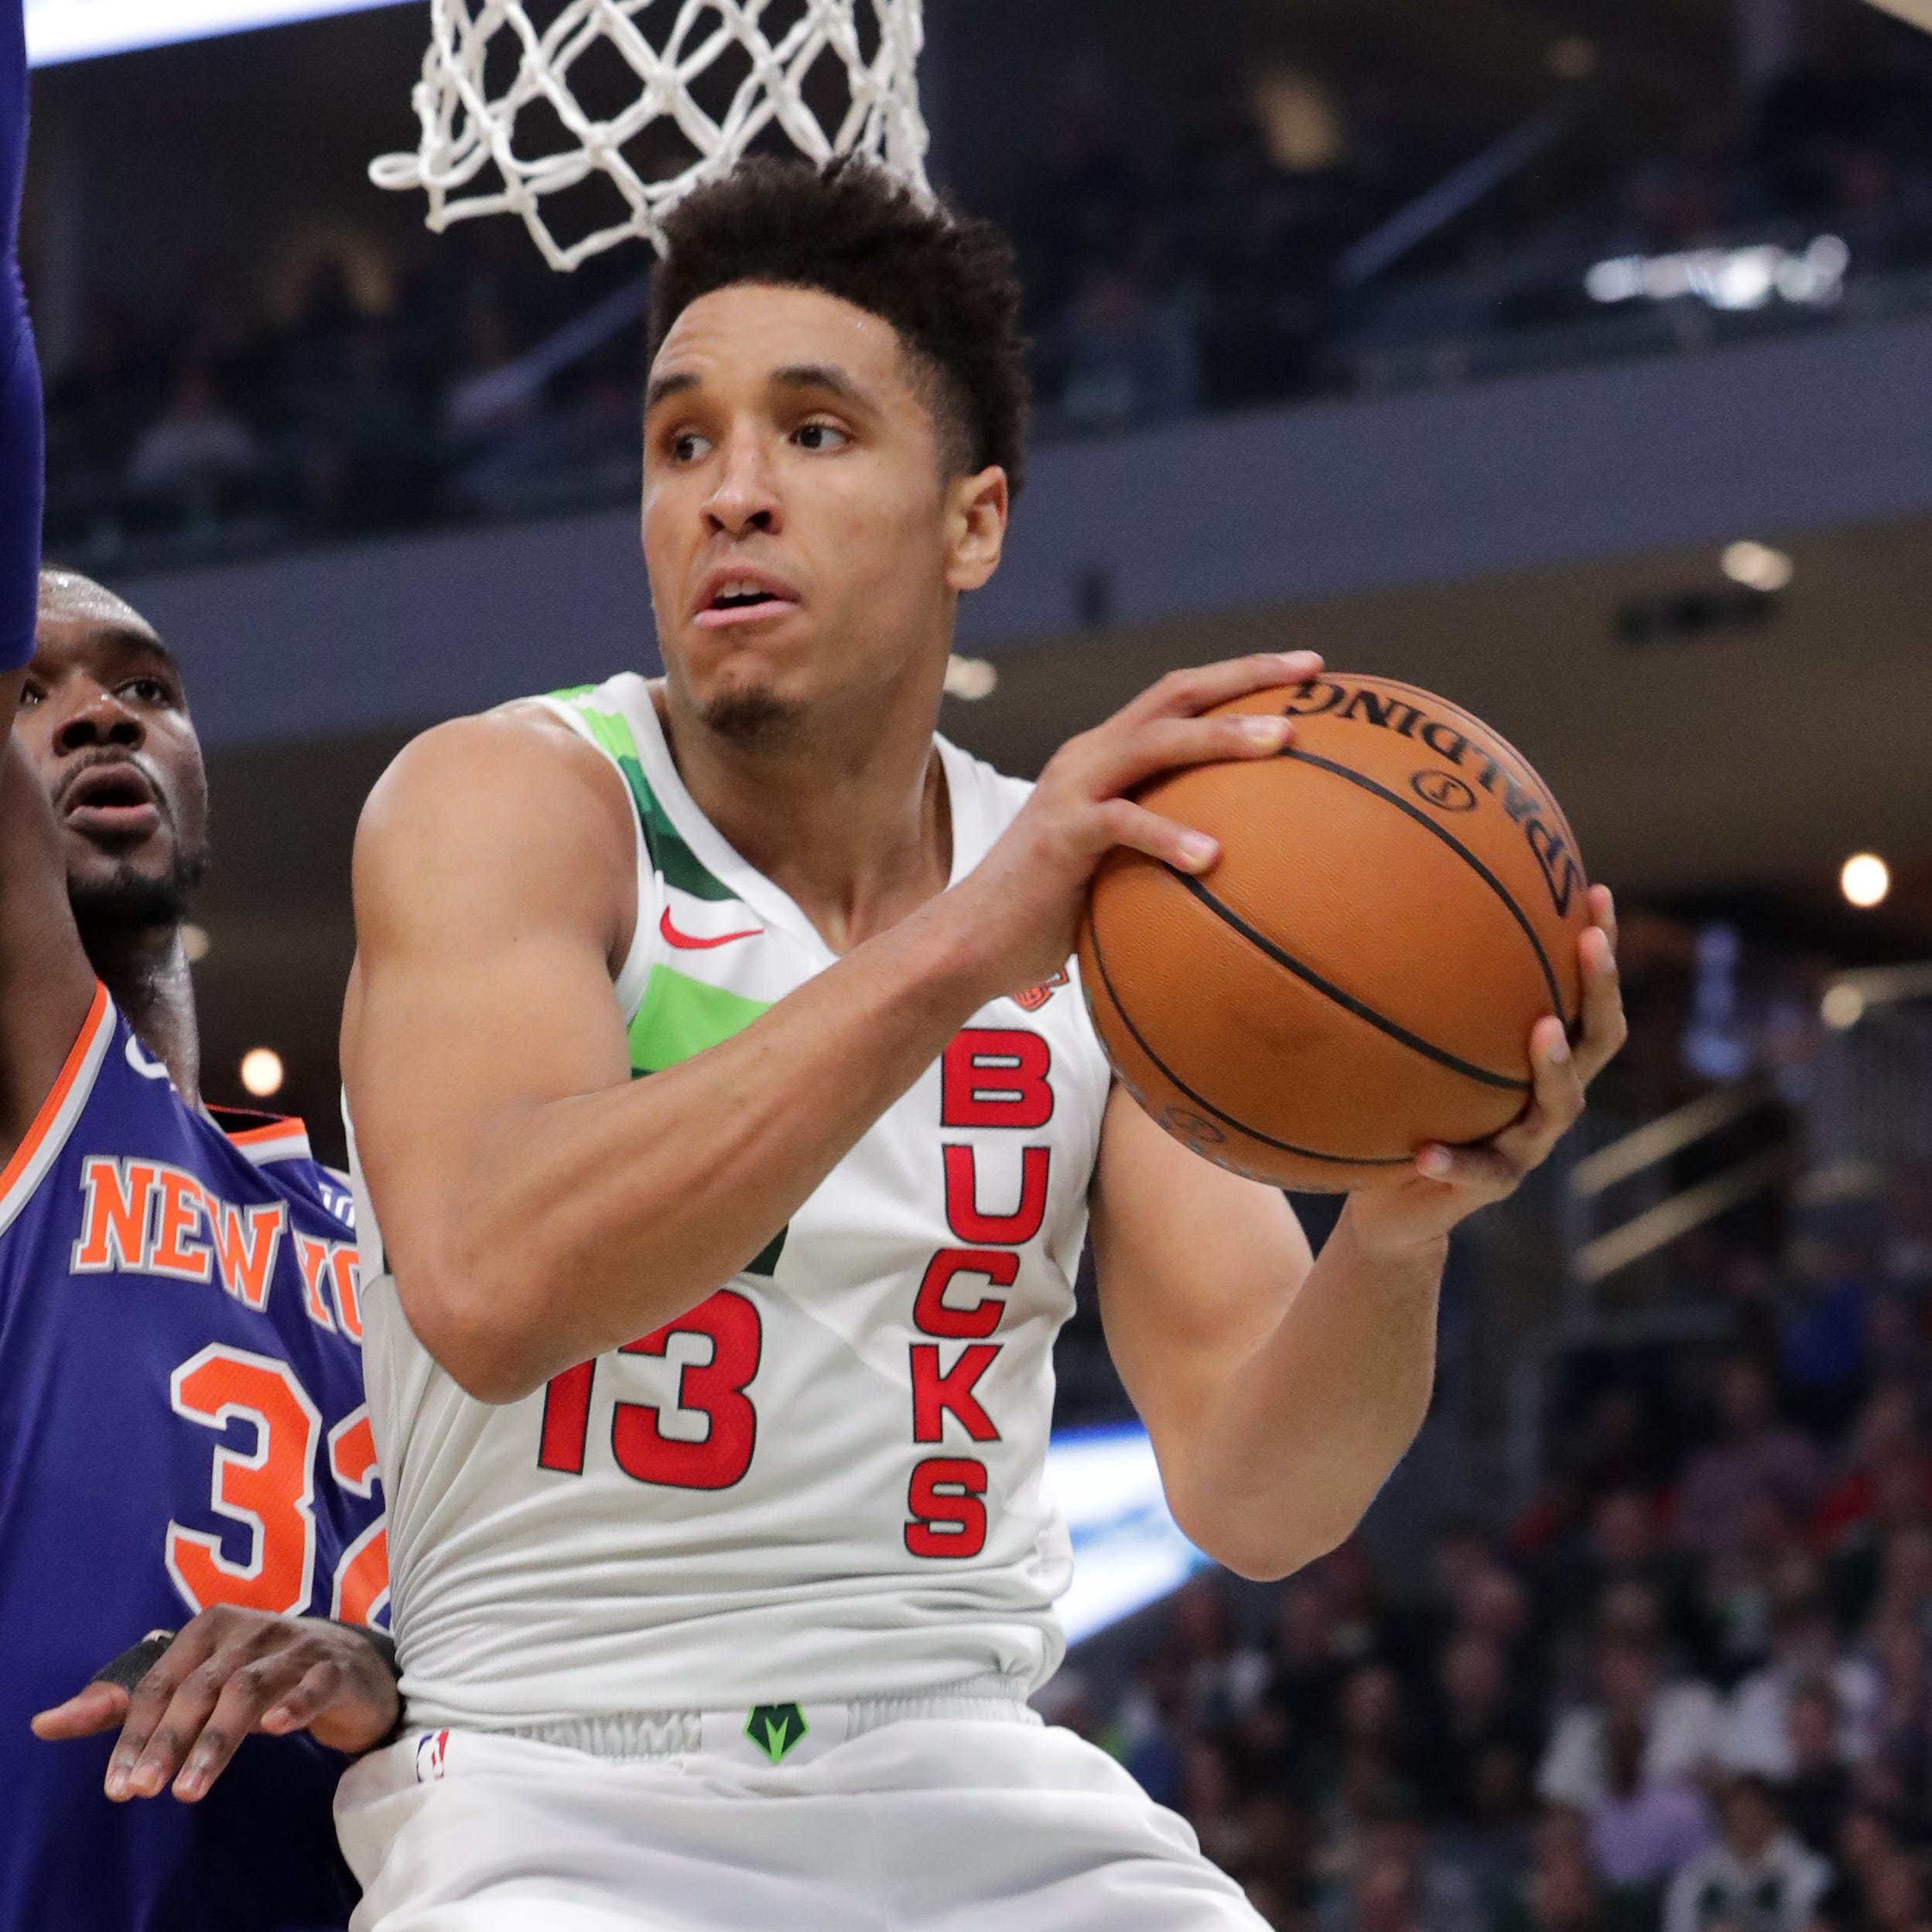 The Bucks' Malcolm Brogdon is likely to miss playoff time with an injury